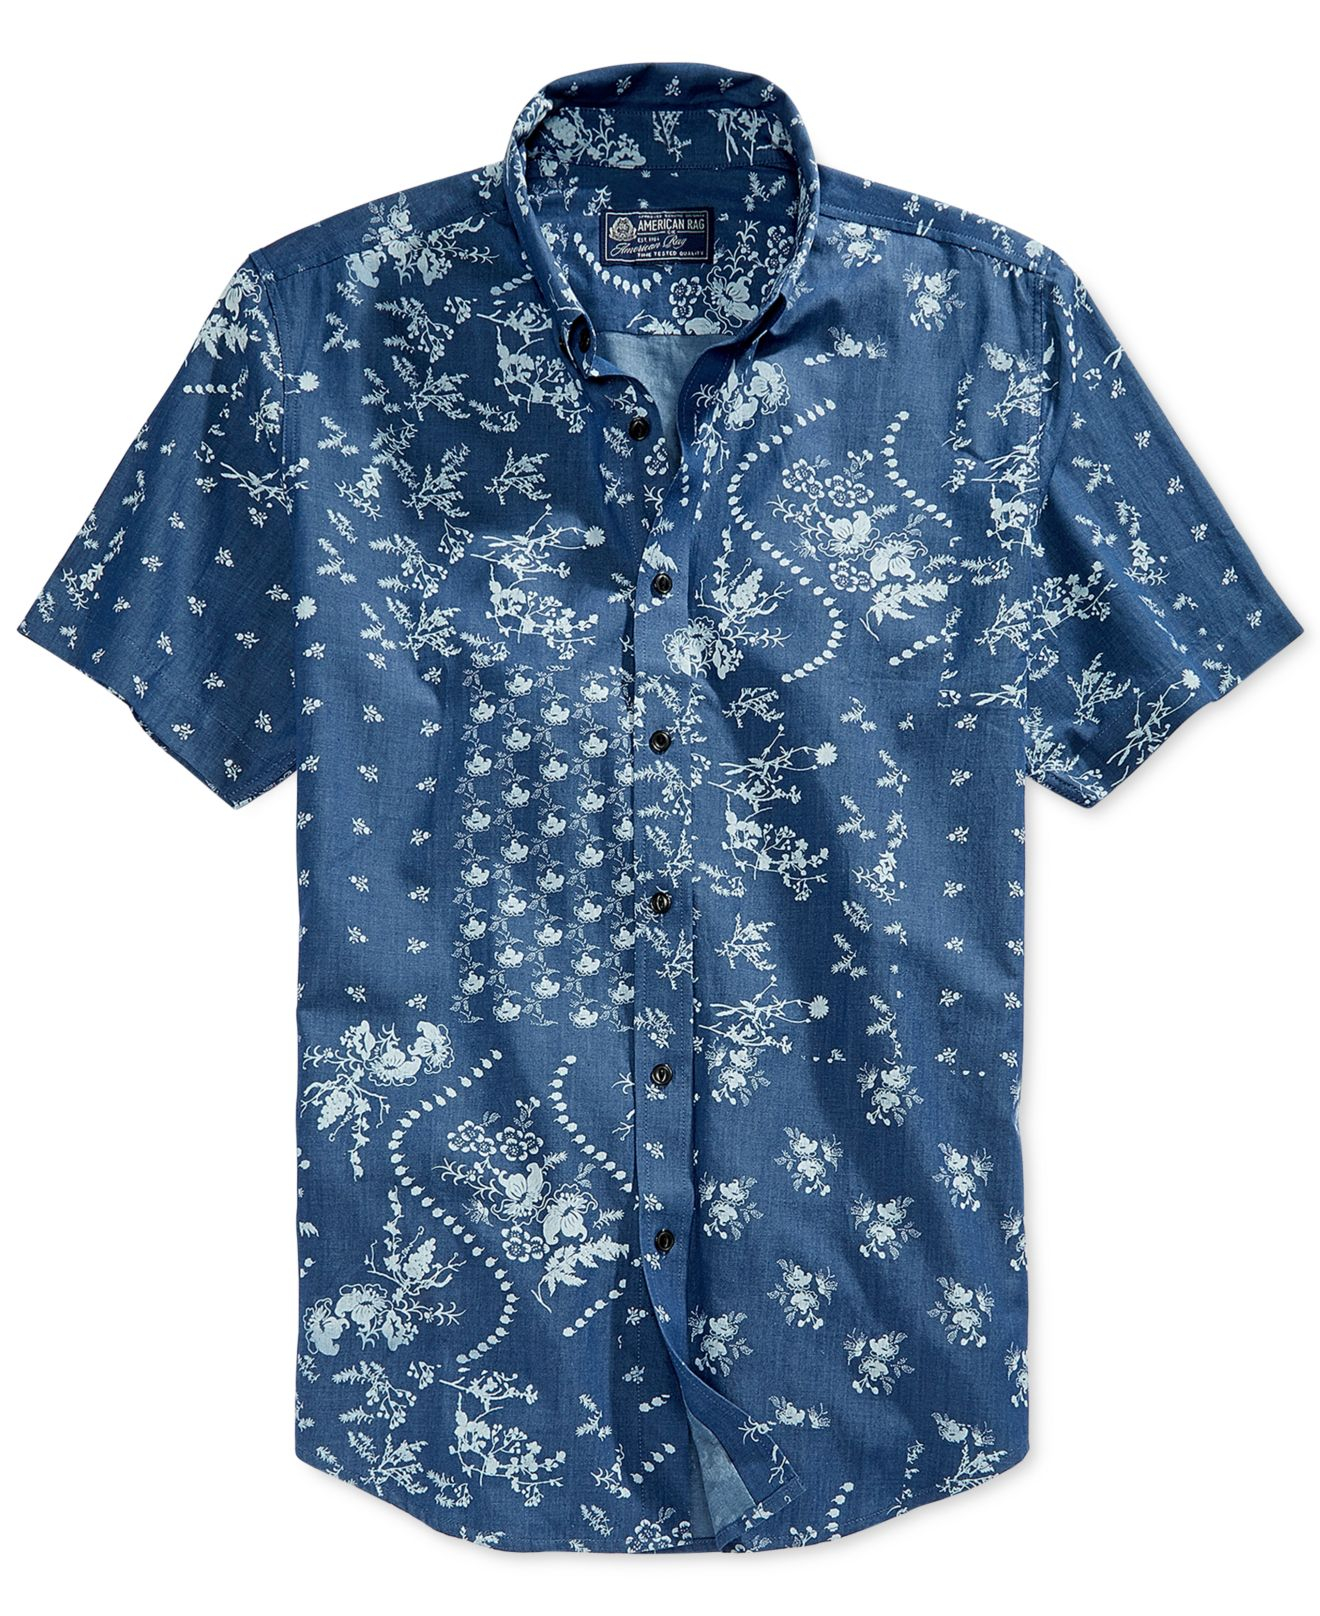 Ted Baker party shirt in dark blue floral. £ Ted Baker short sleeve shirt in navy with geo print. £ Tom Tailor Short Sleeve Shirt In All Over Print. £ Tom Tailor Short Sleeve Button Down Shirt In Leopard Print. £ Farah Oakton skinny smart shirt with paisley print in white.